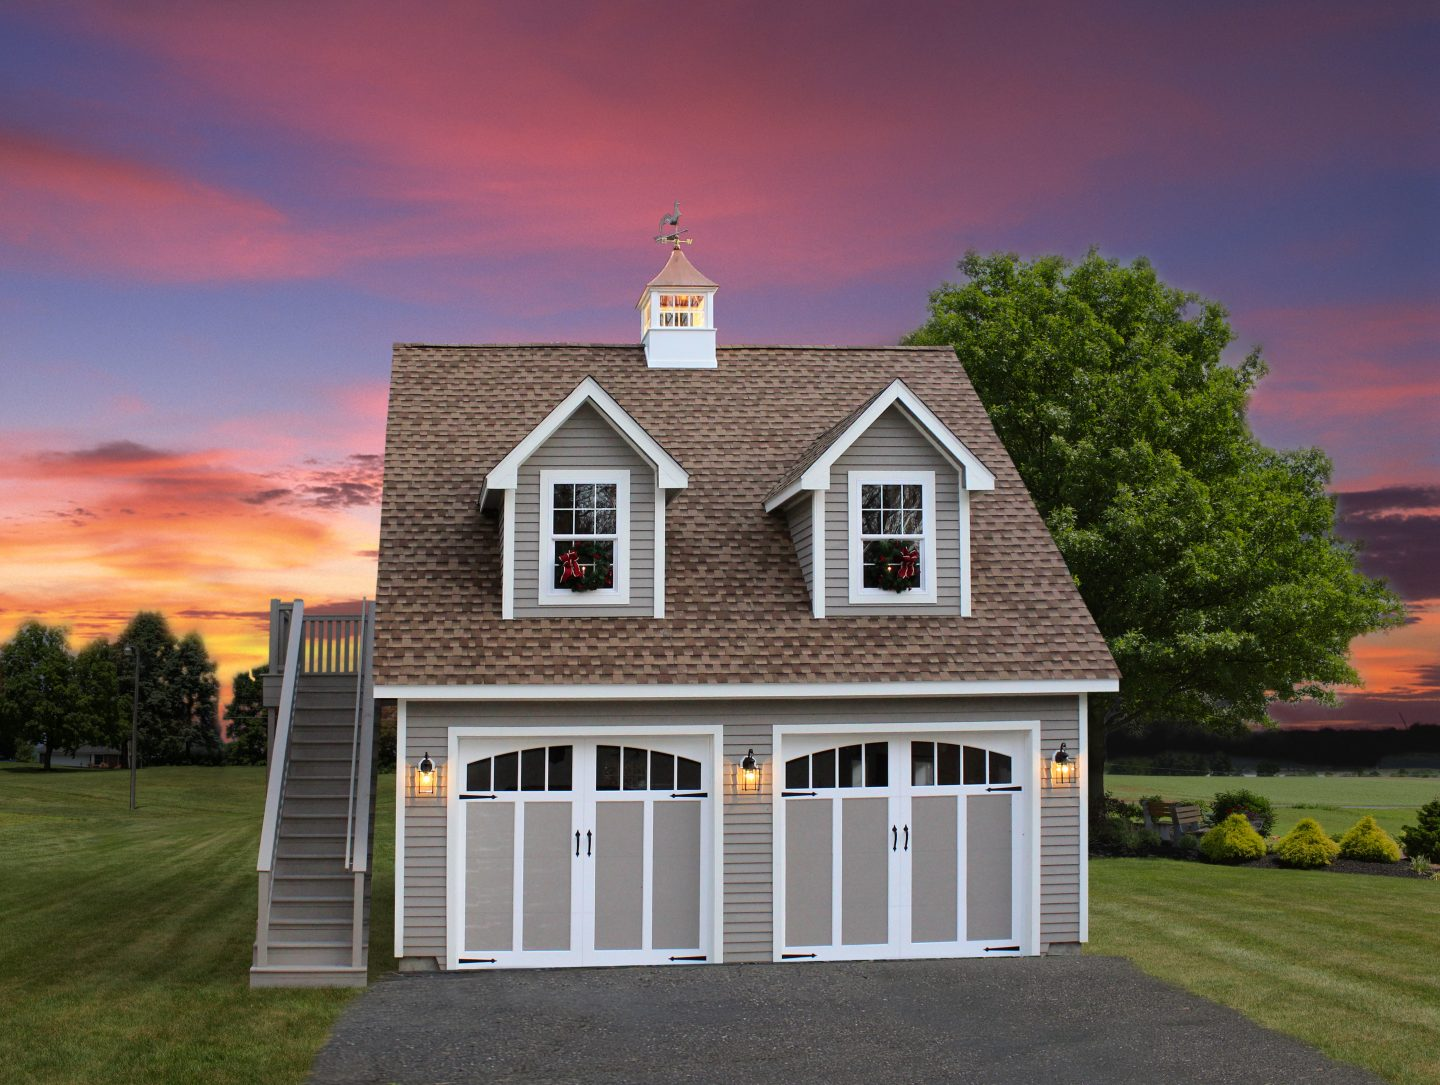 Two Car Garages One Two Story Ny Ct Best In Backyards,2400 Sq Ft Duplex House Plans India